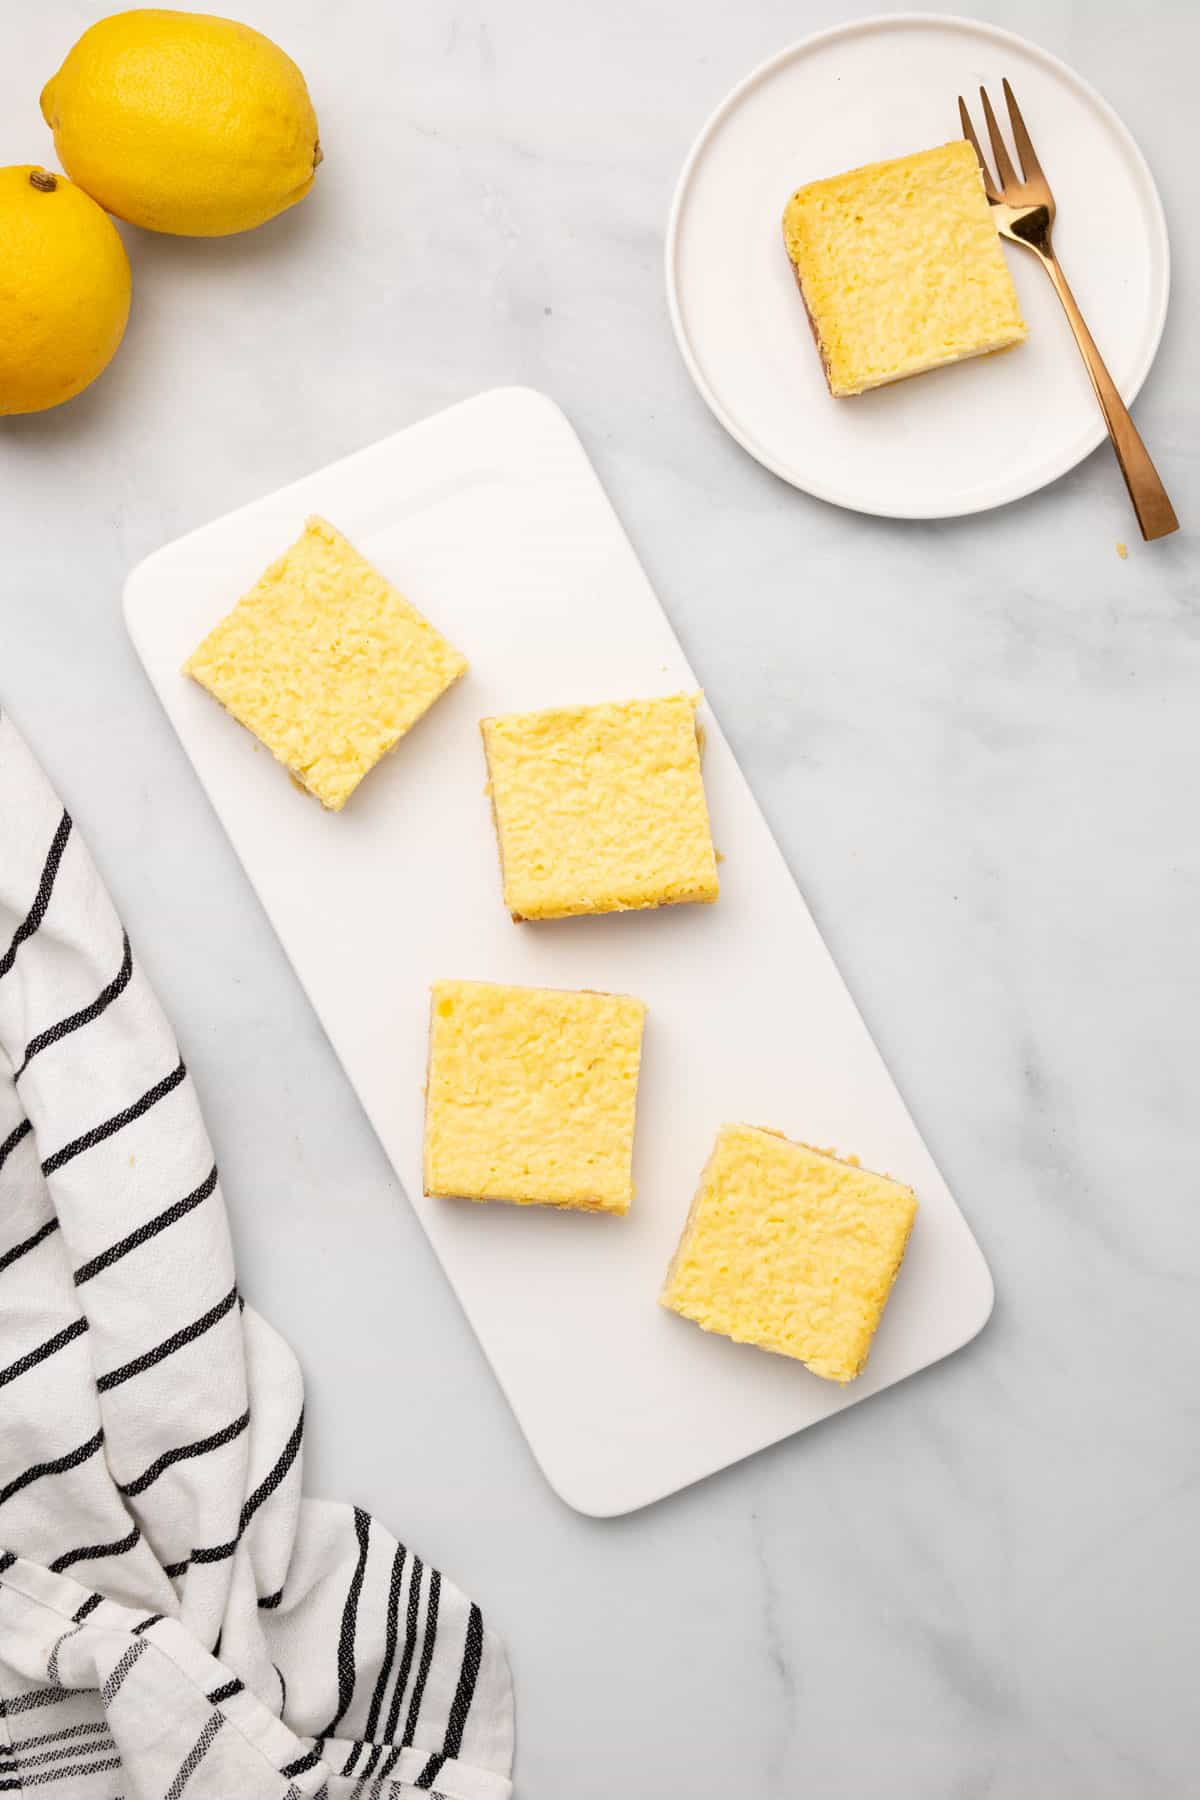 baked lemon bars ready to serve